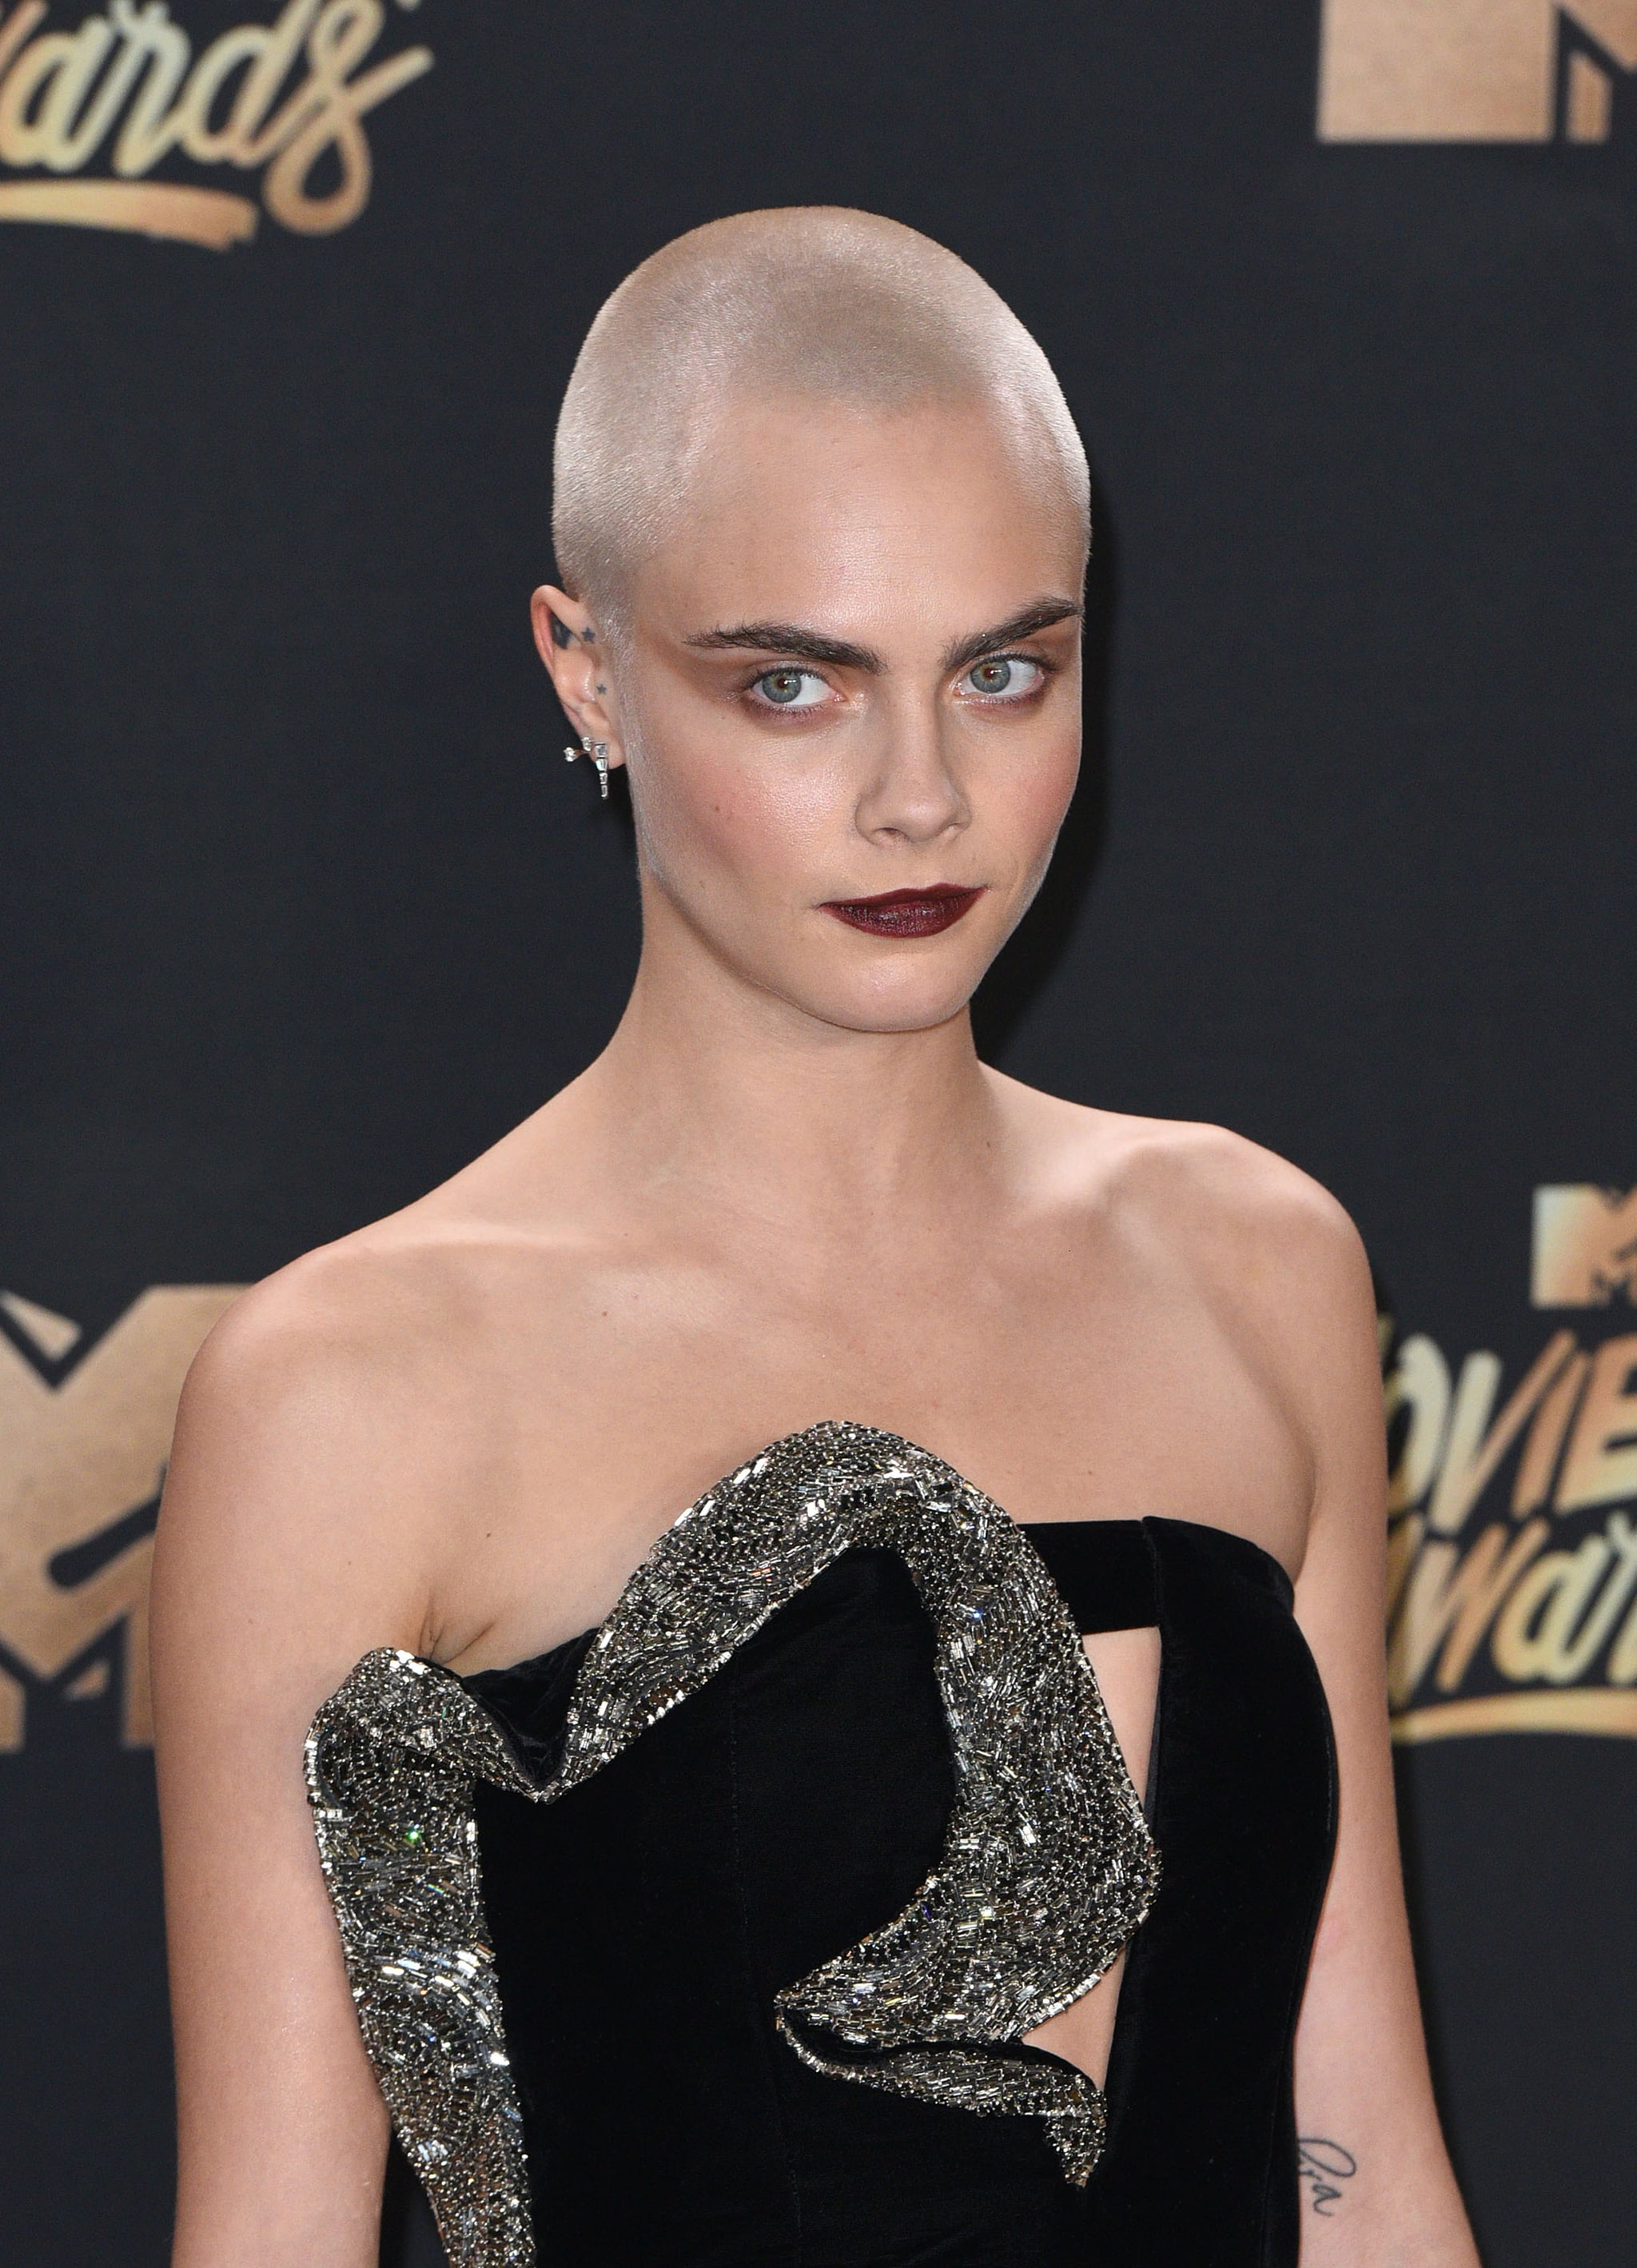 Cara Delevingne Shaved Head Tattoo Popsugar Beauty Australia